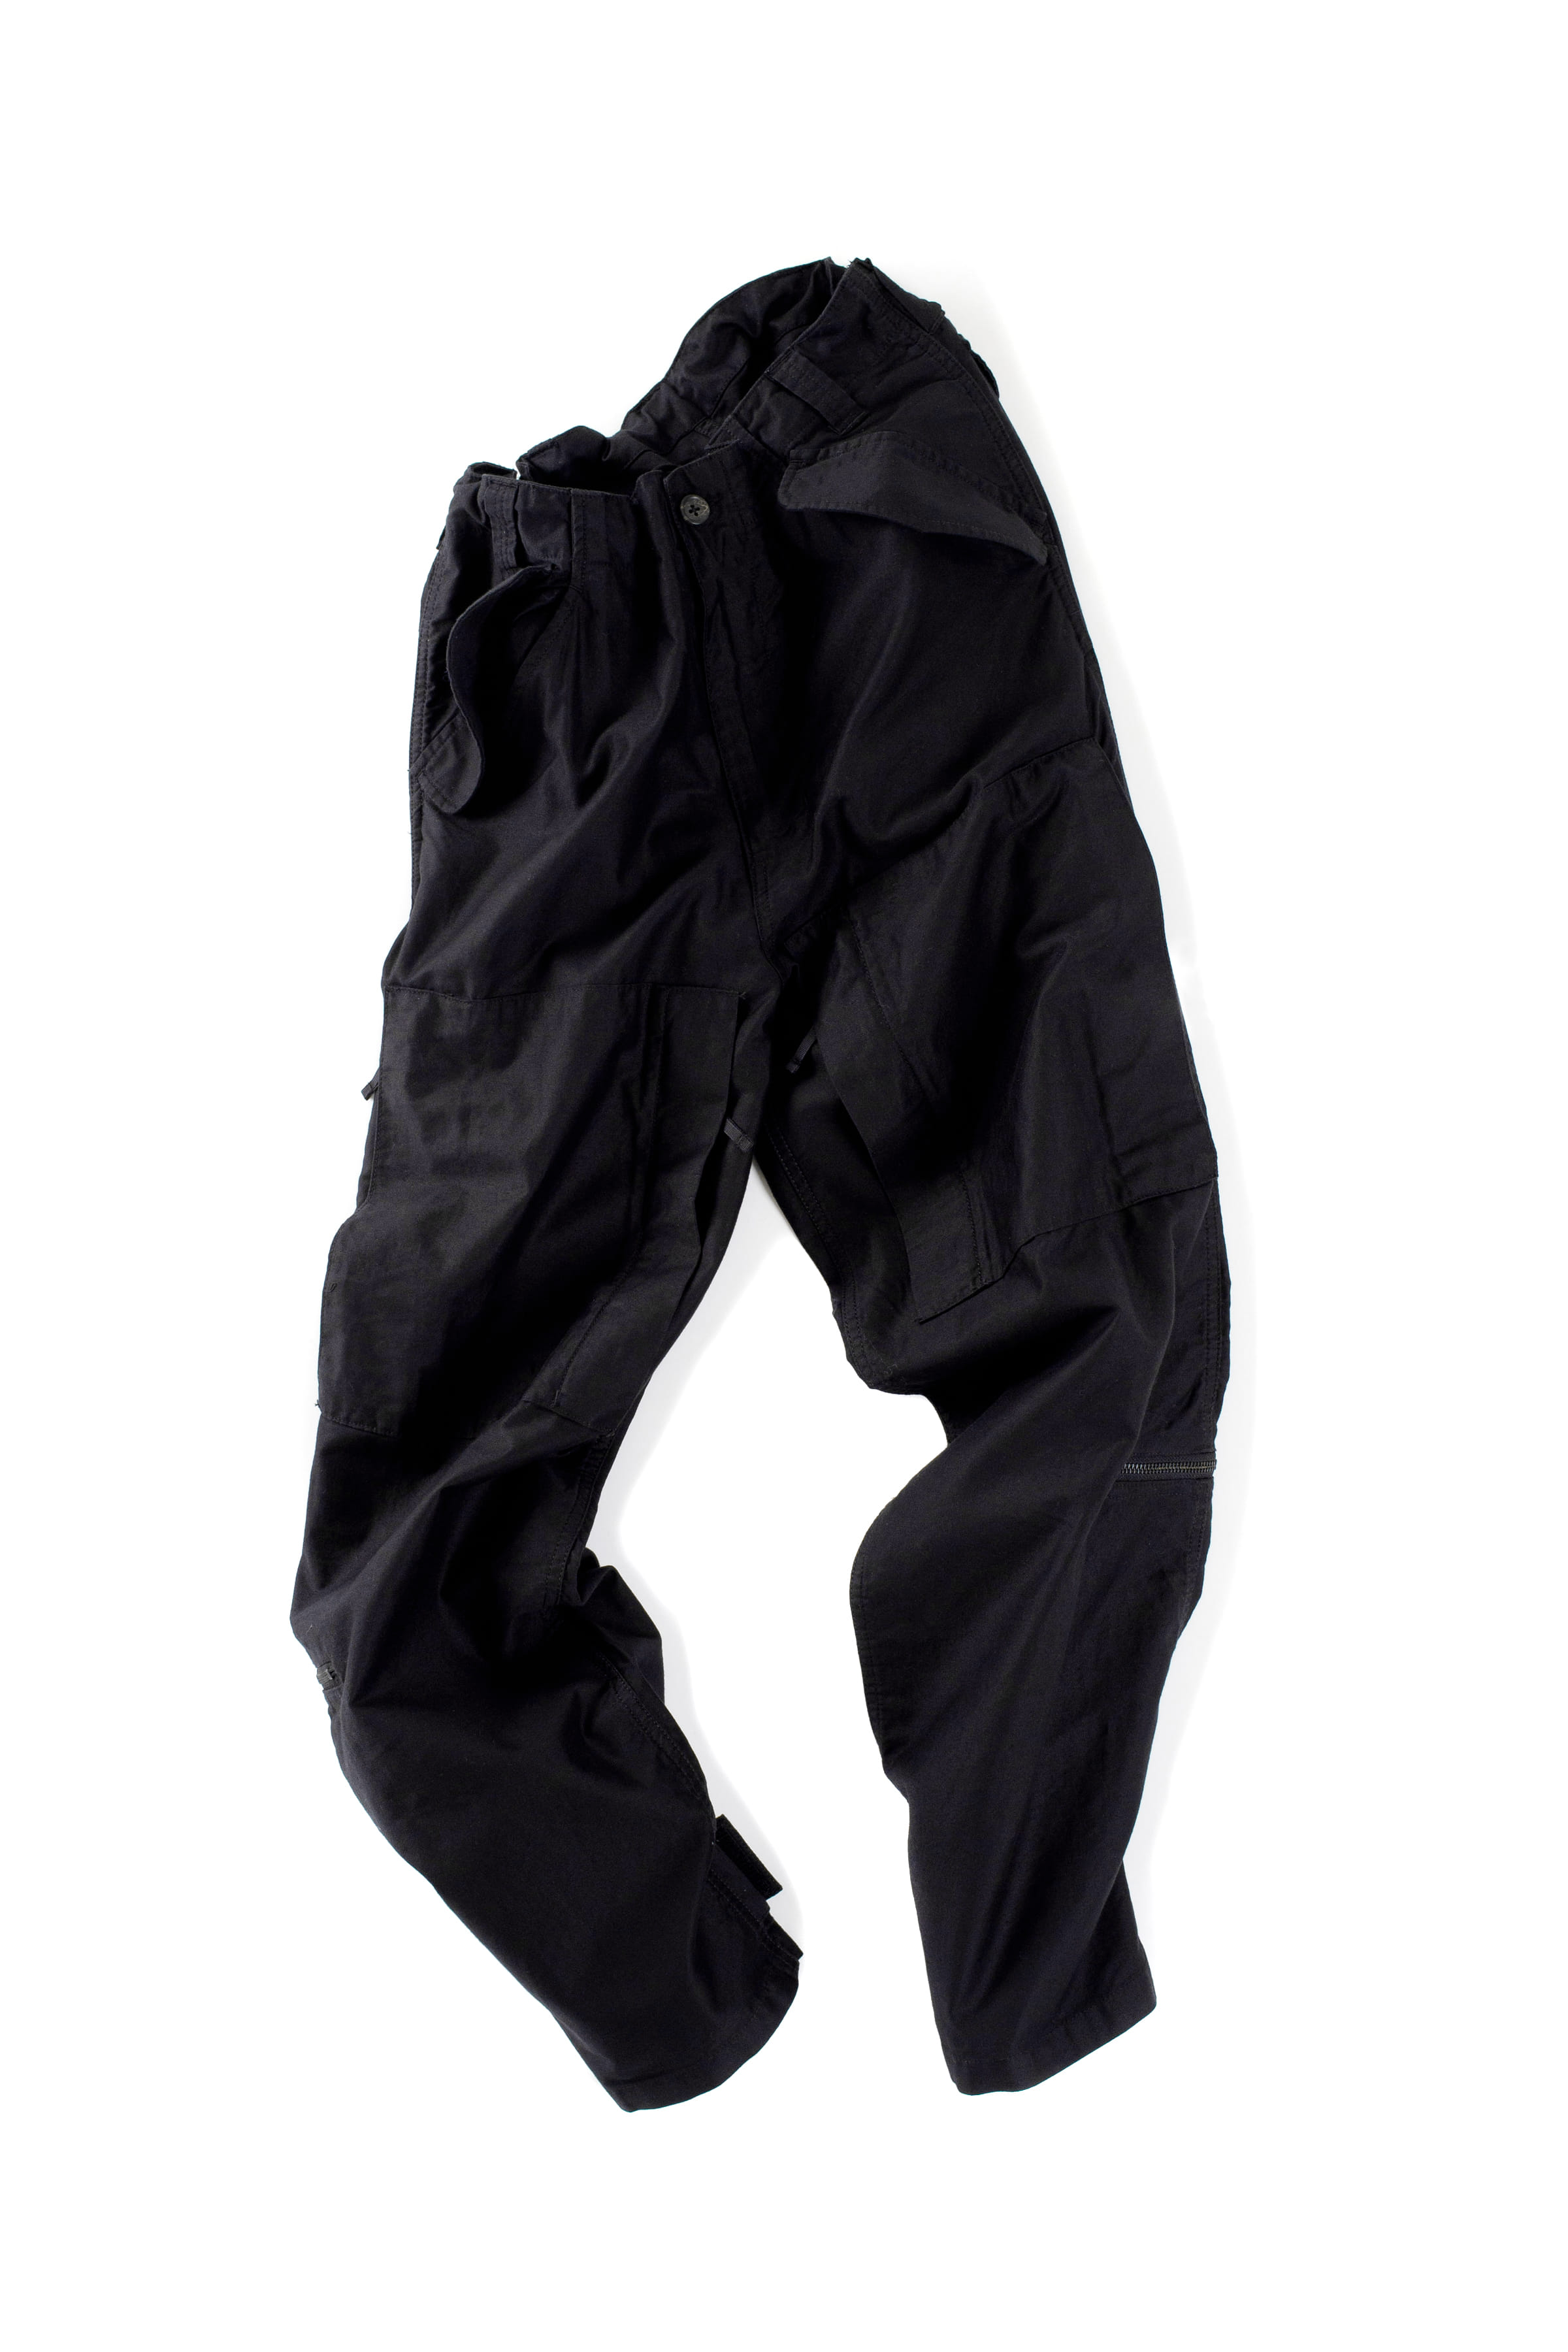 CLAMP : Helicopter Pants (Black)